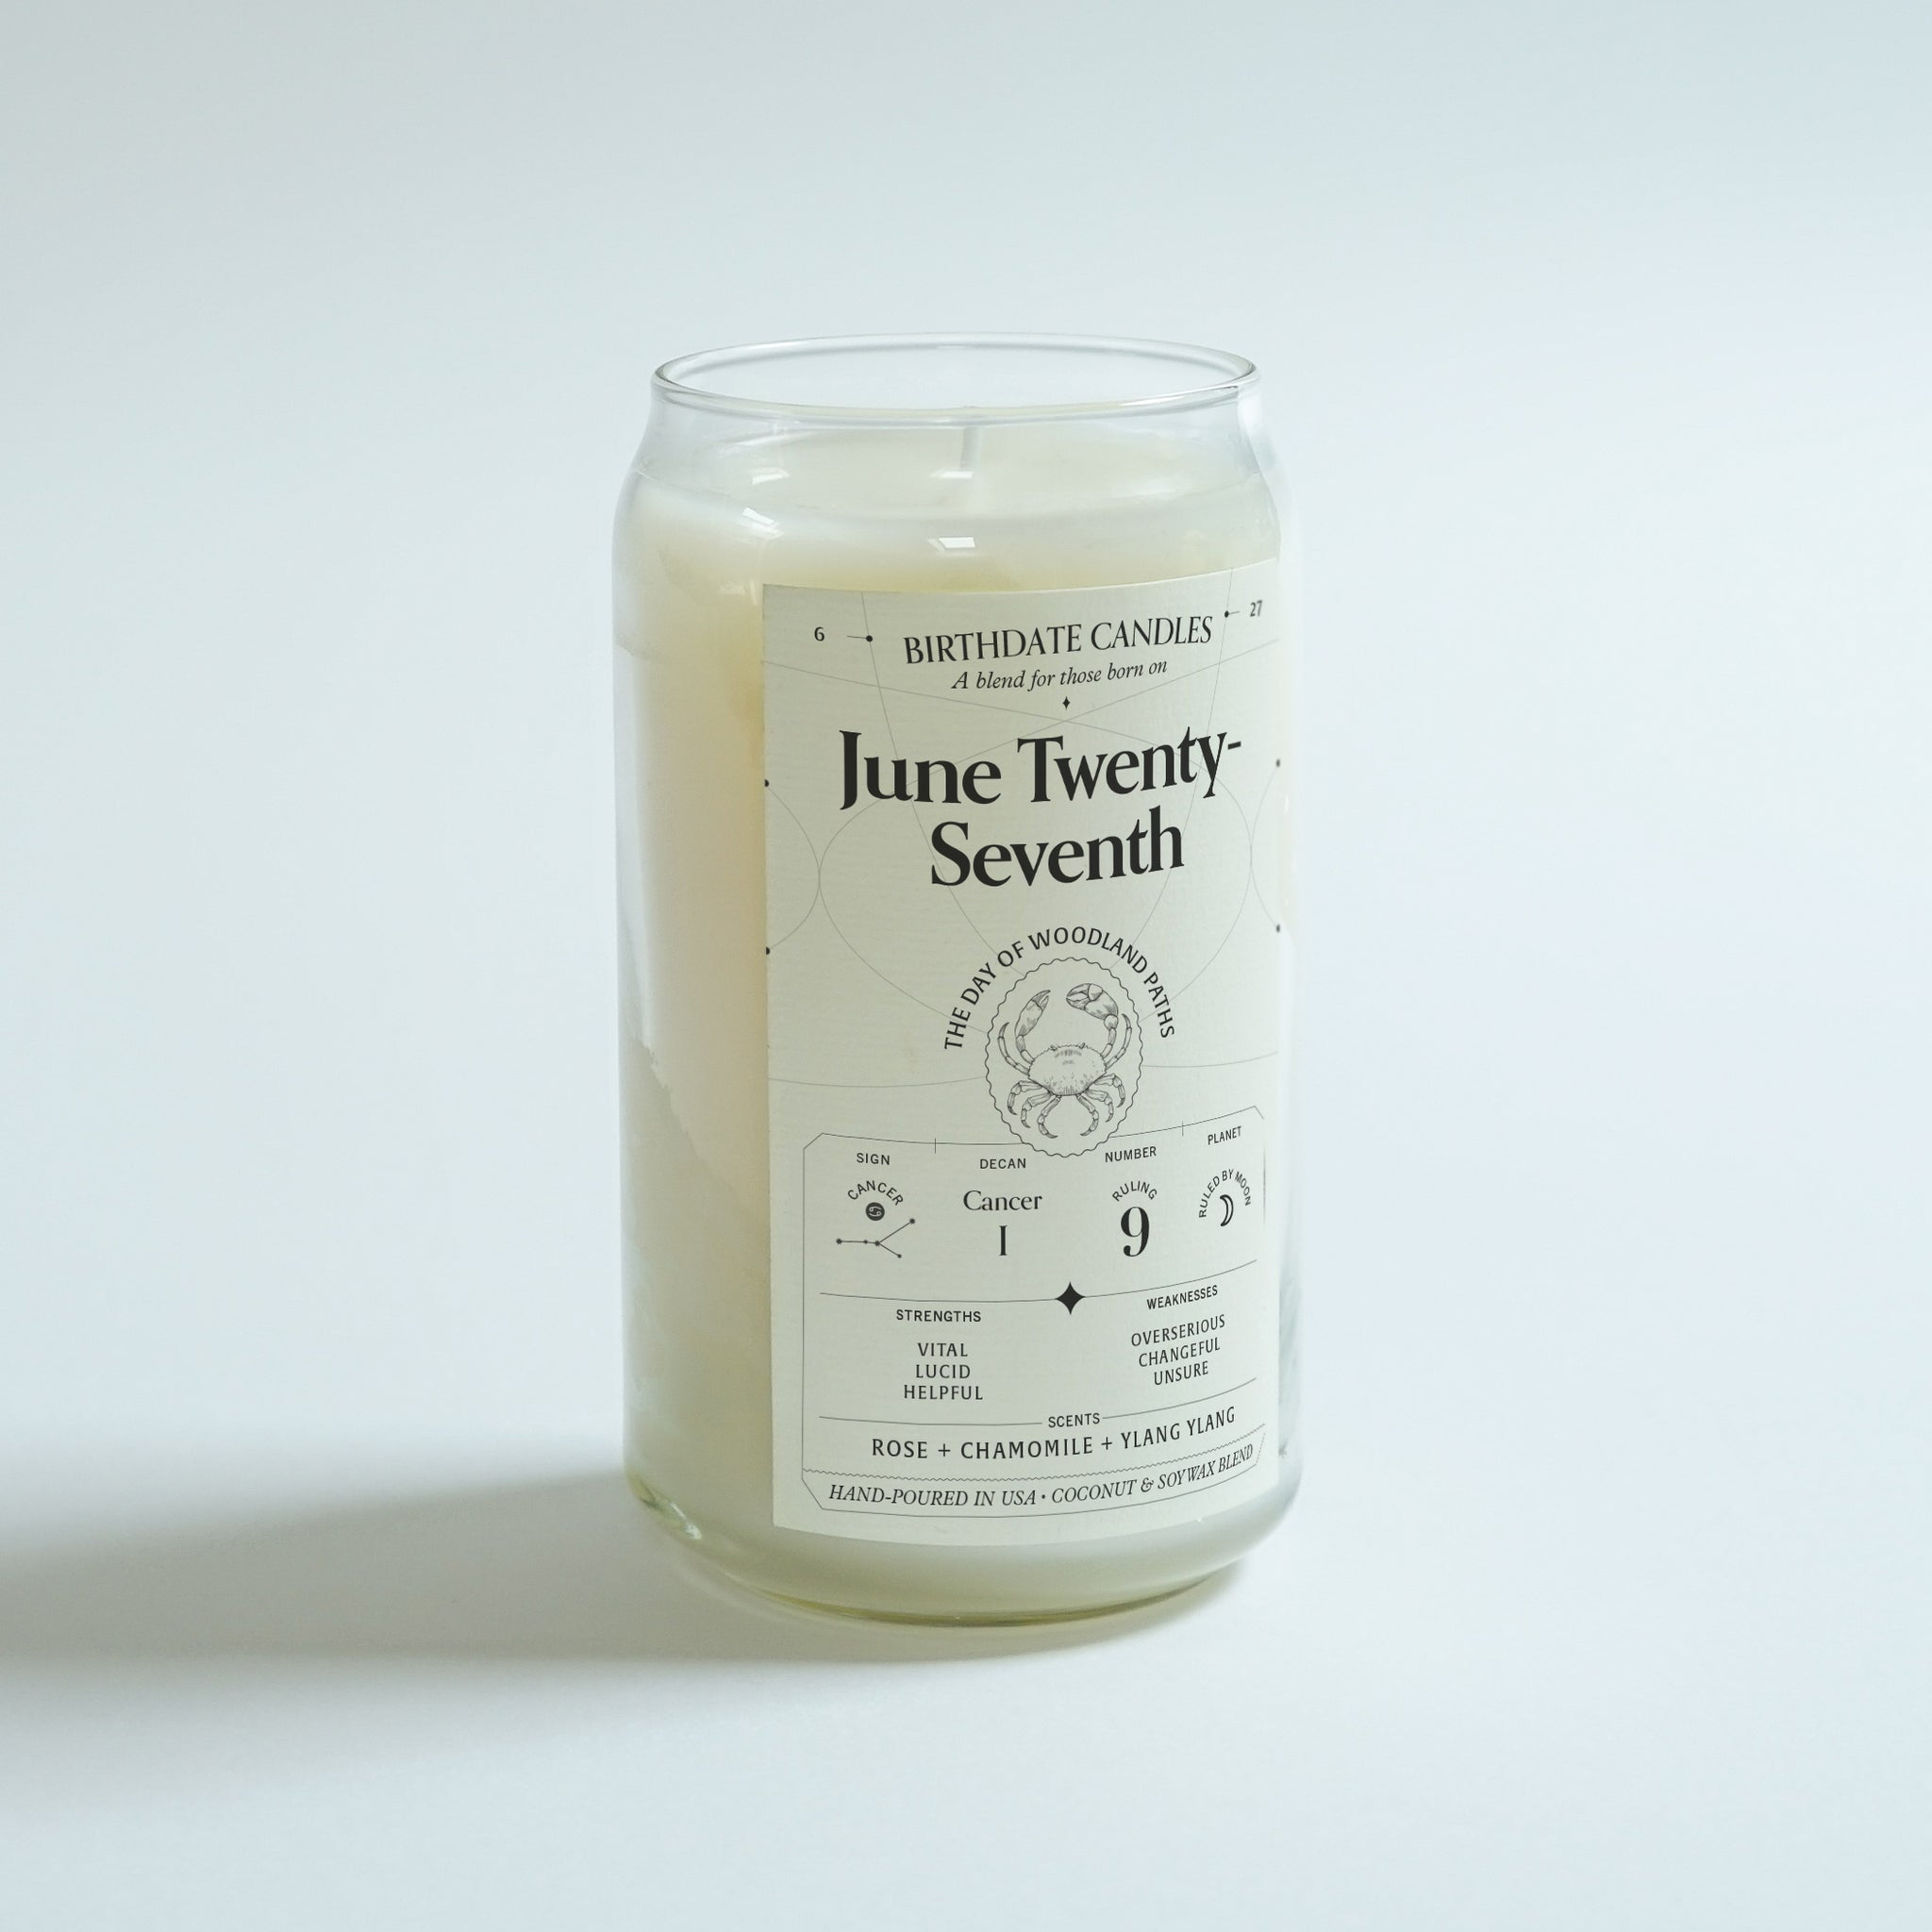 The June Twenty-Seventh Birthday Candle